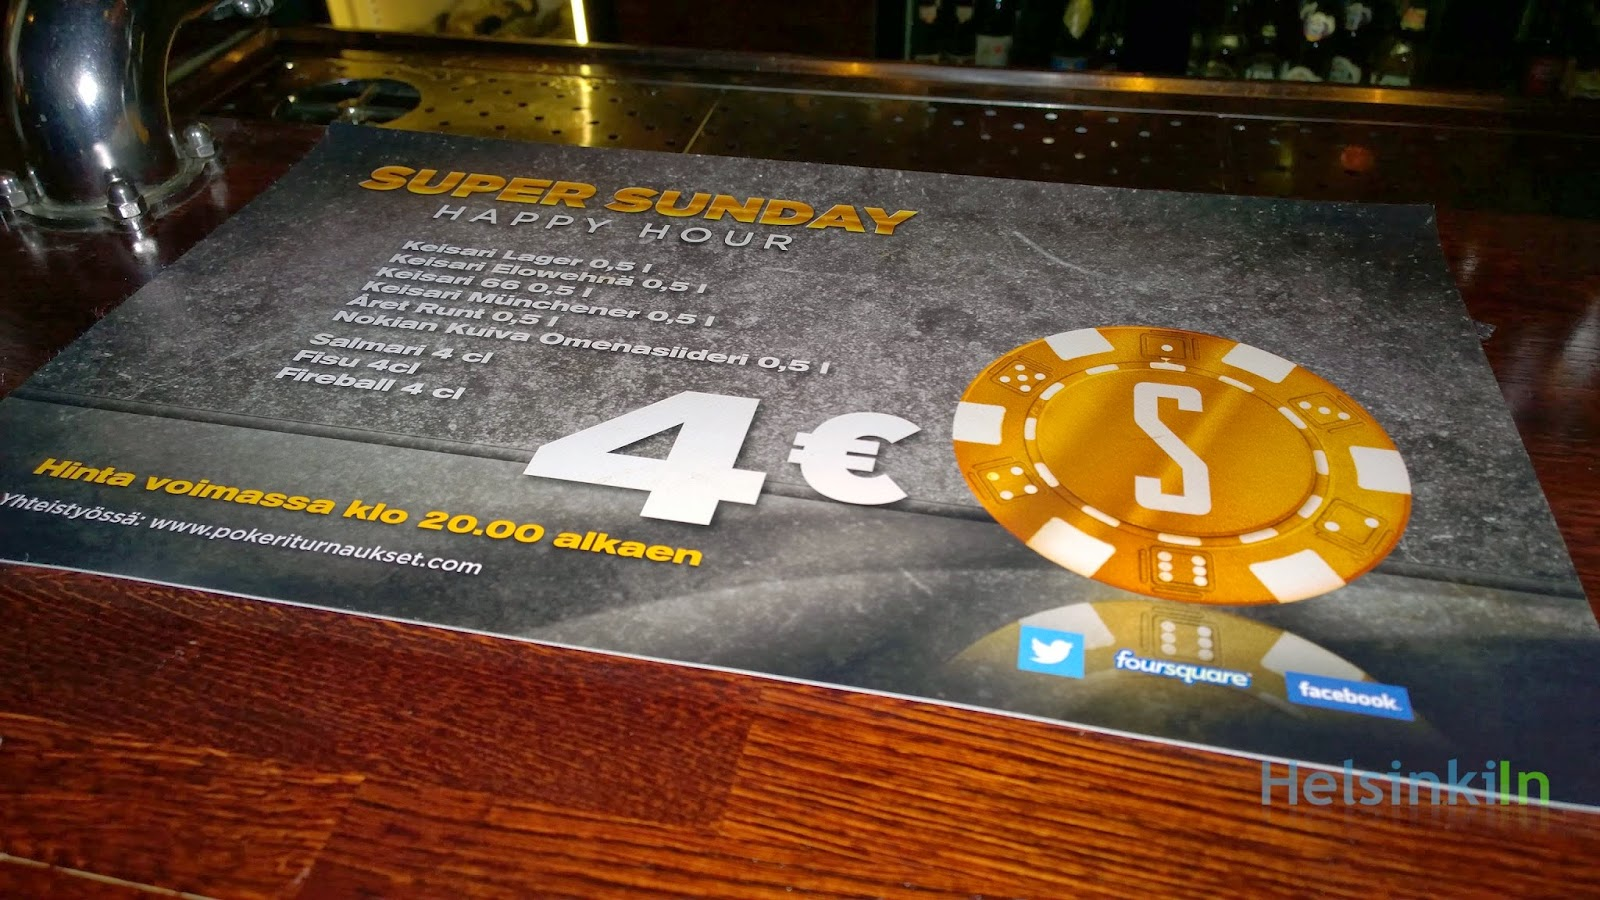 Super Sunday at Stone's